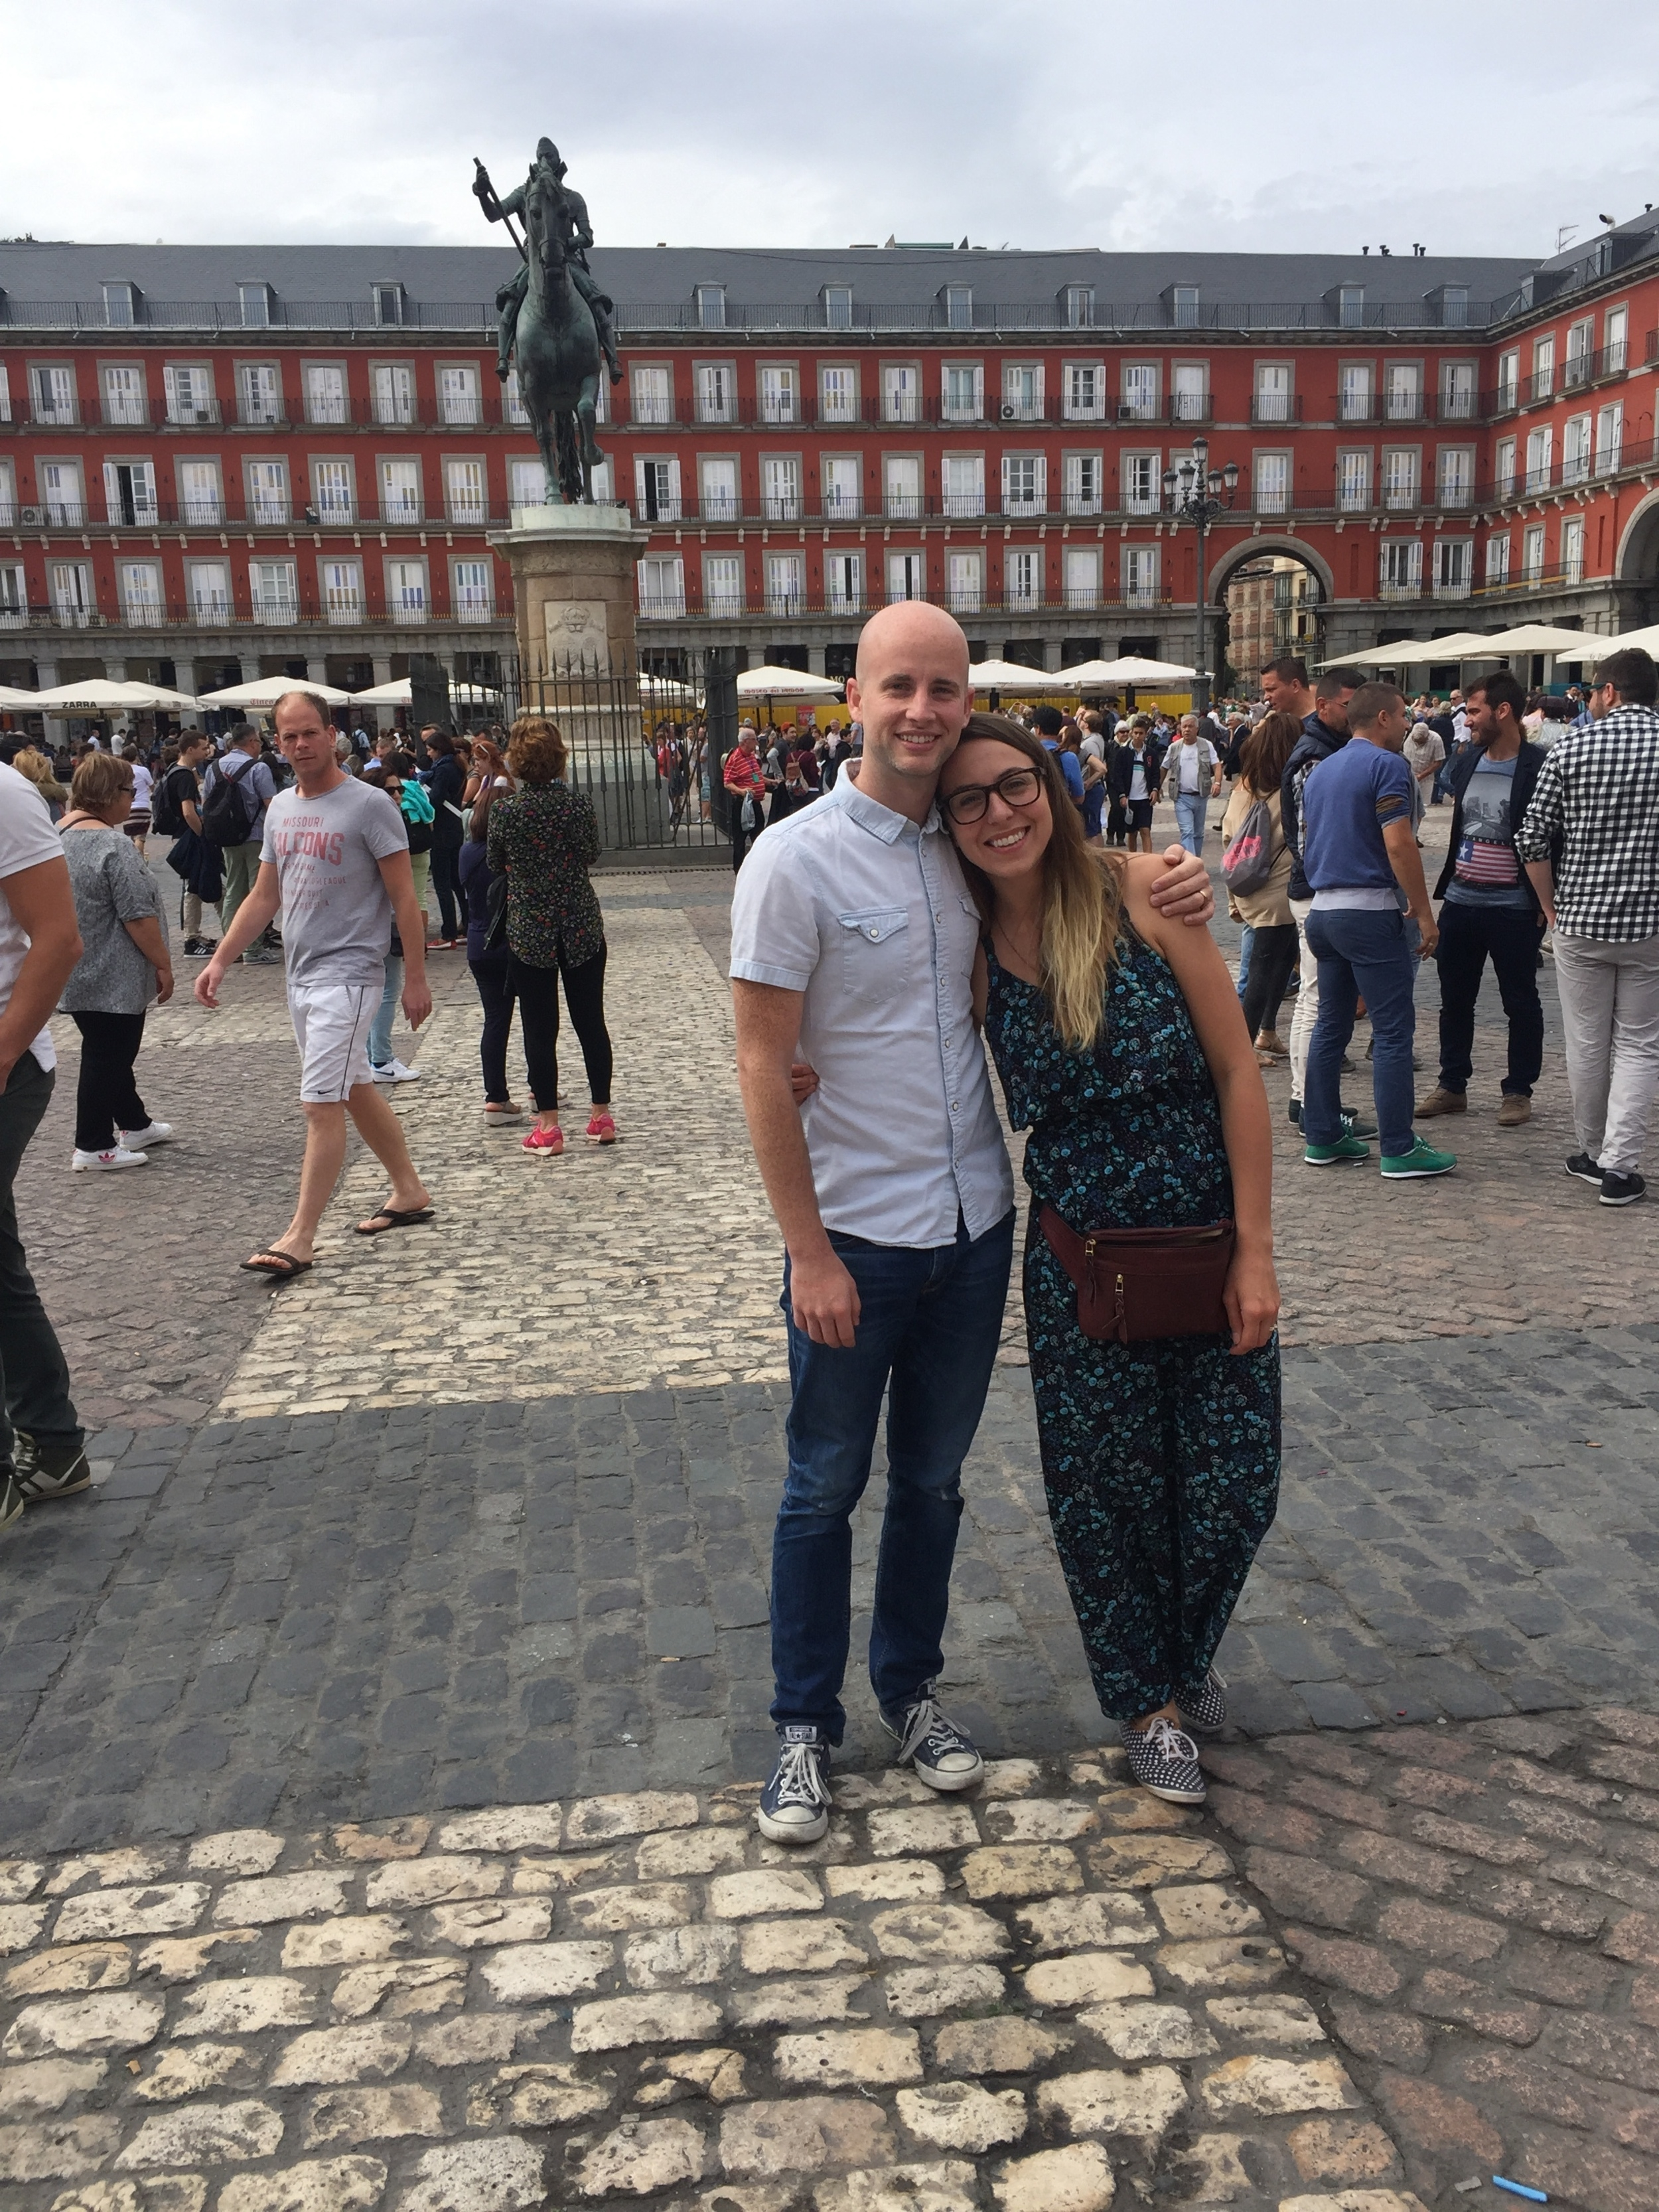 This is Plaza Mayor which is one of the many Plazas of Madrid